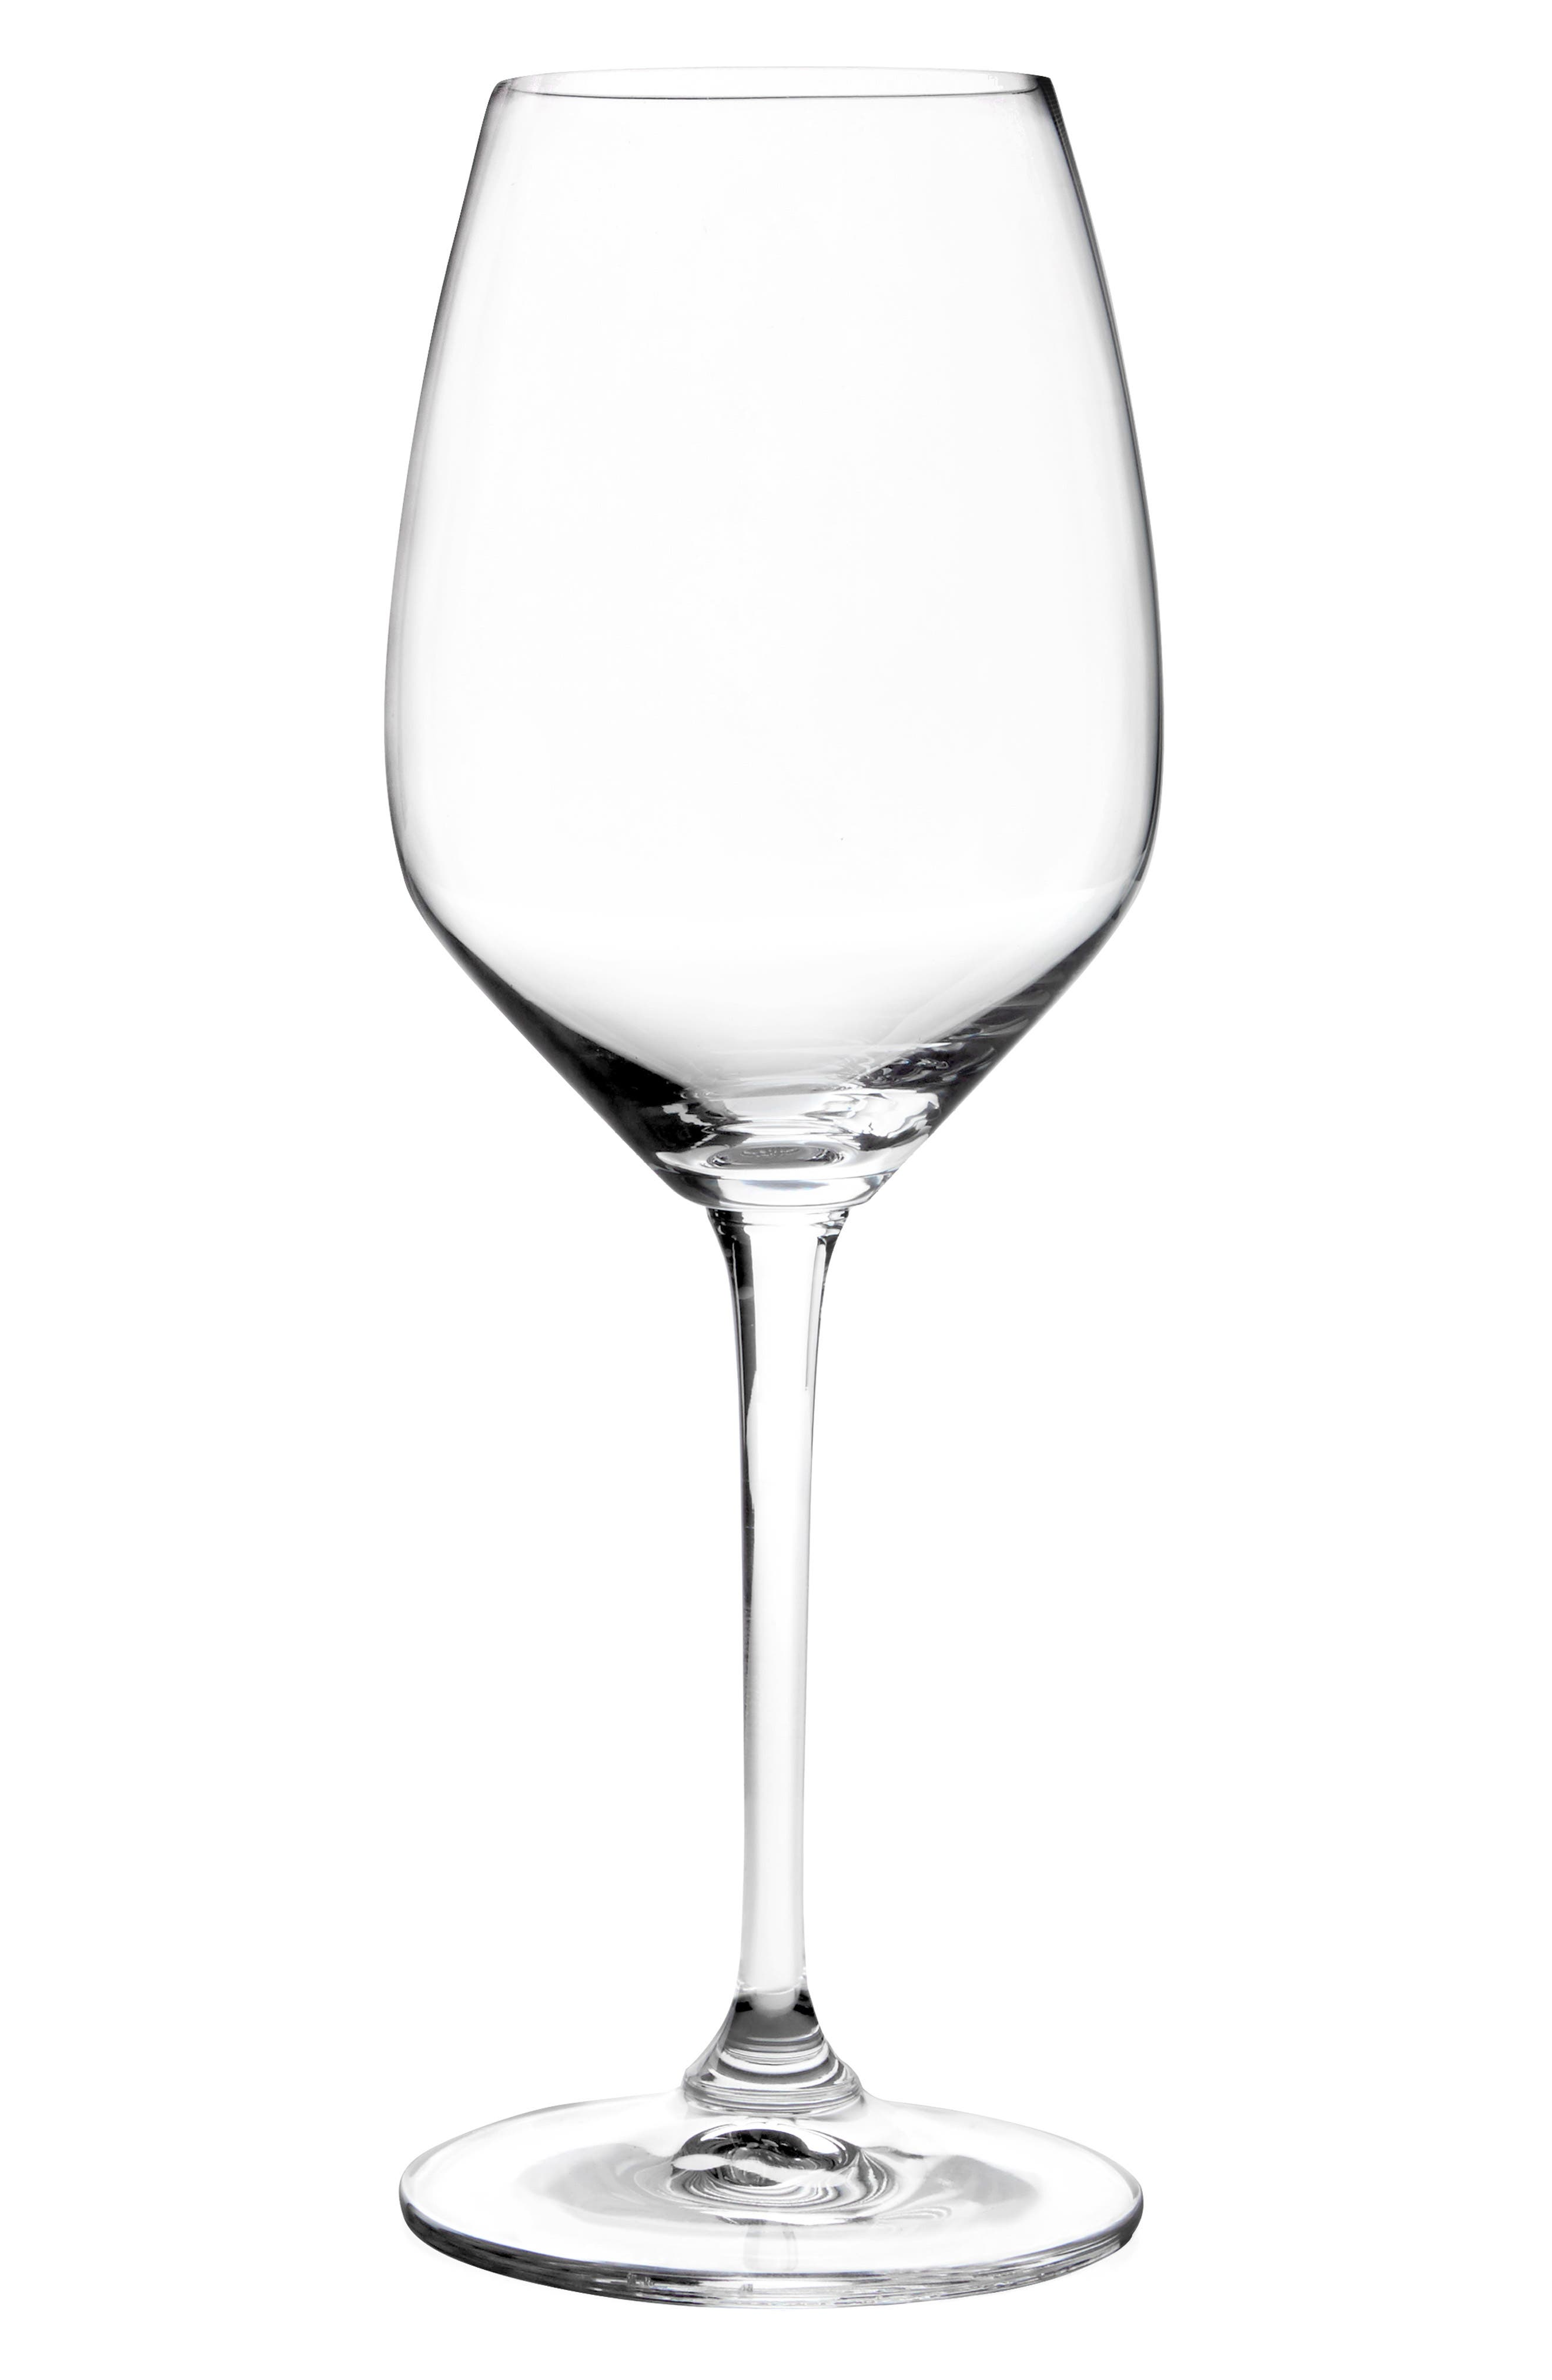 Heart to Heart Set of 2 Riesling Glasses,                             Main thumbnail 1, color,                             100